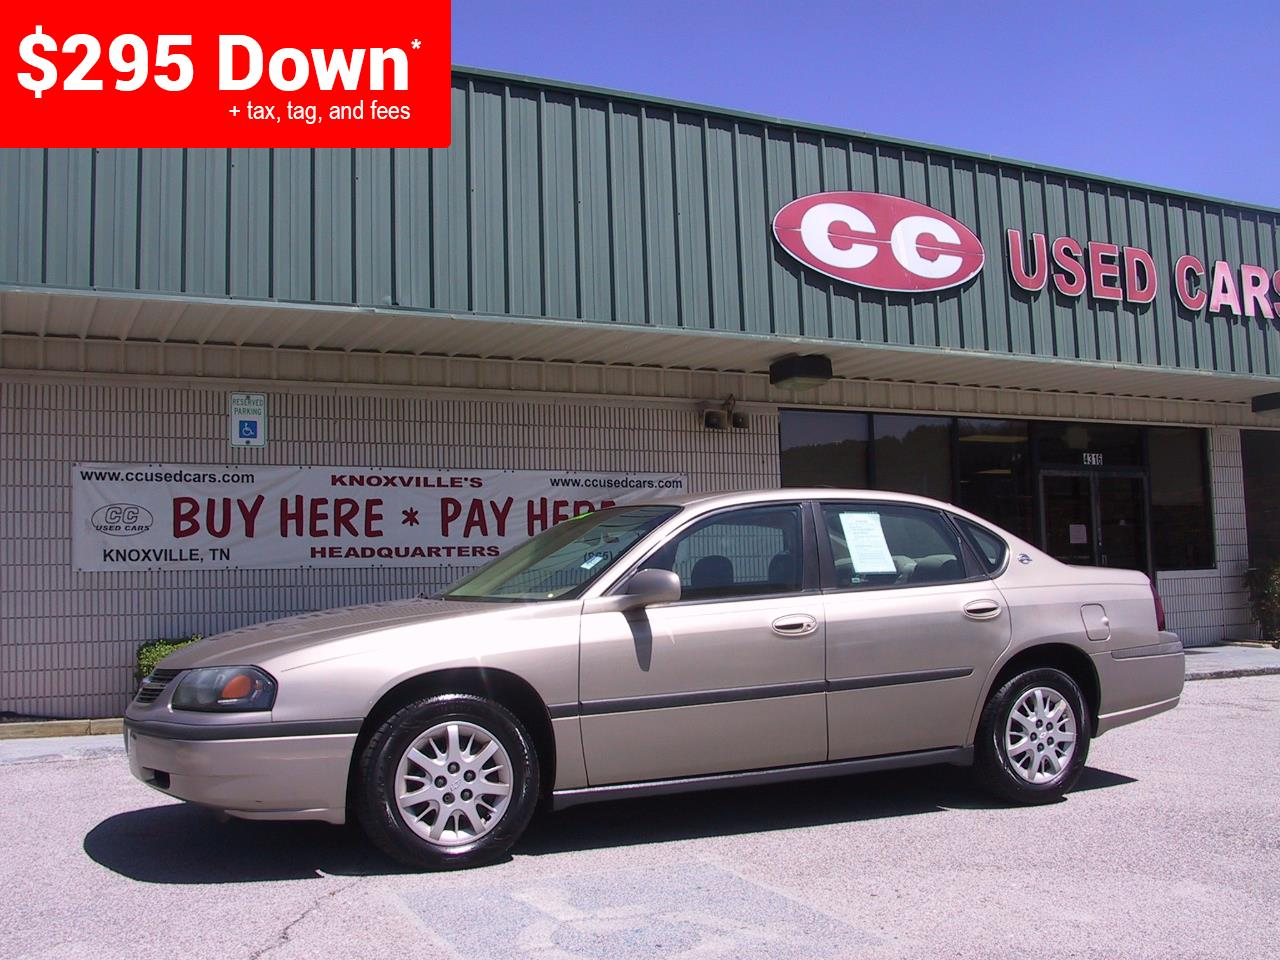 Used Cars Knoxville >> Buy Here Pay Here Cars For Sale Knoxville Tn 37912 Cc Used Cars